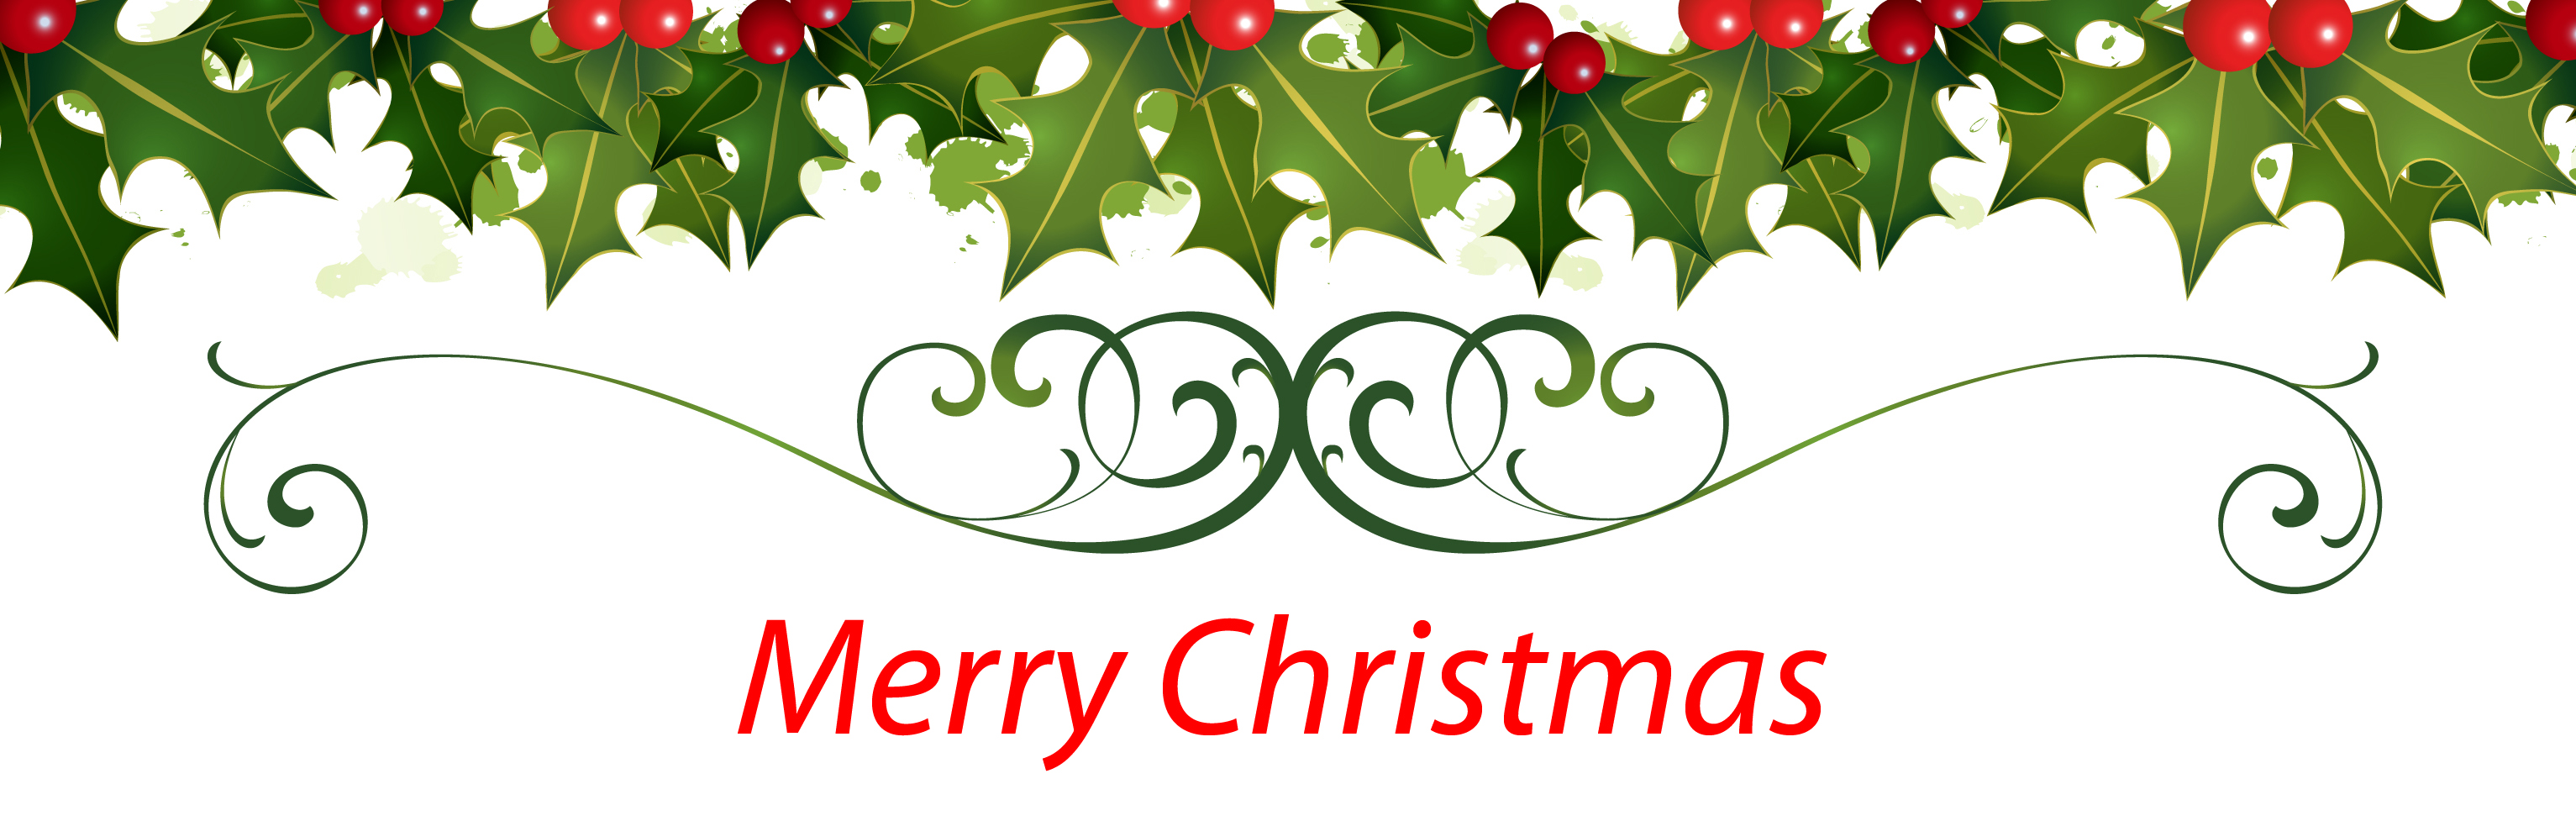 To Wish You And Your Families That Celebrate A Very Merry Christmas